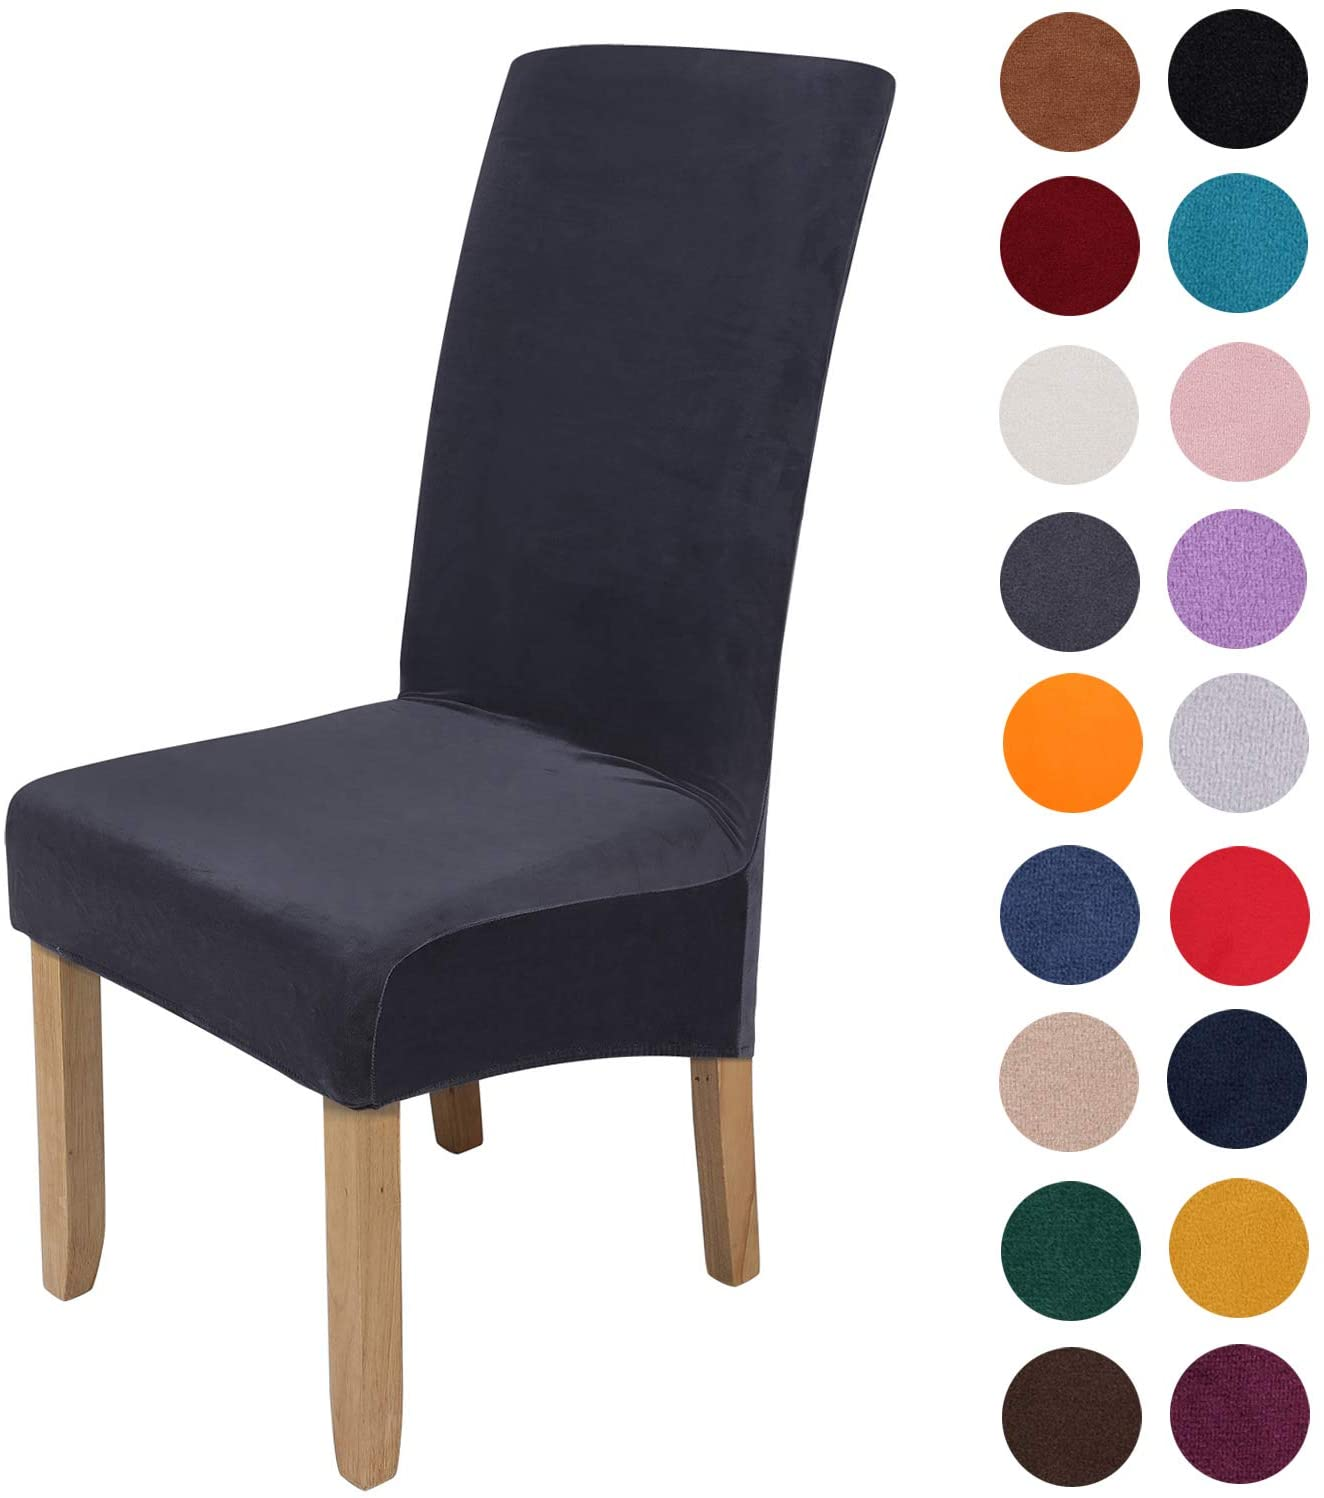 Colorxy Large Velvet Spandex Chair Covers for Dining Room Set of 6, Soft Stretch Chair Protectors Slipcovers, Removable and Washable, Dark Grey